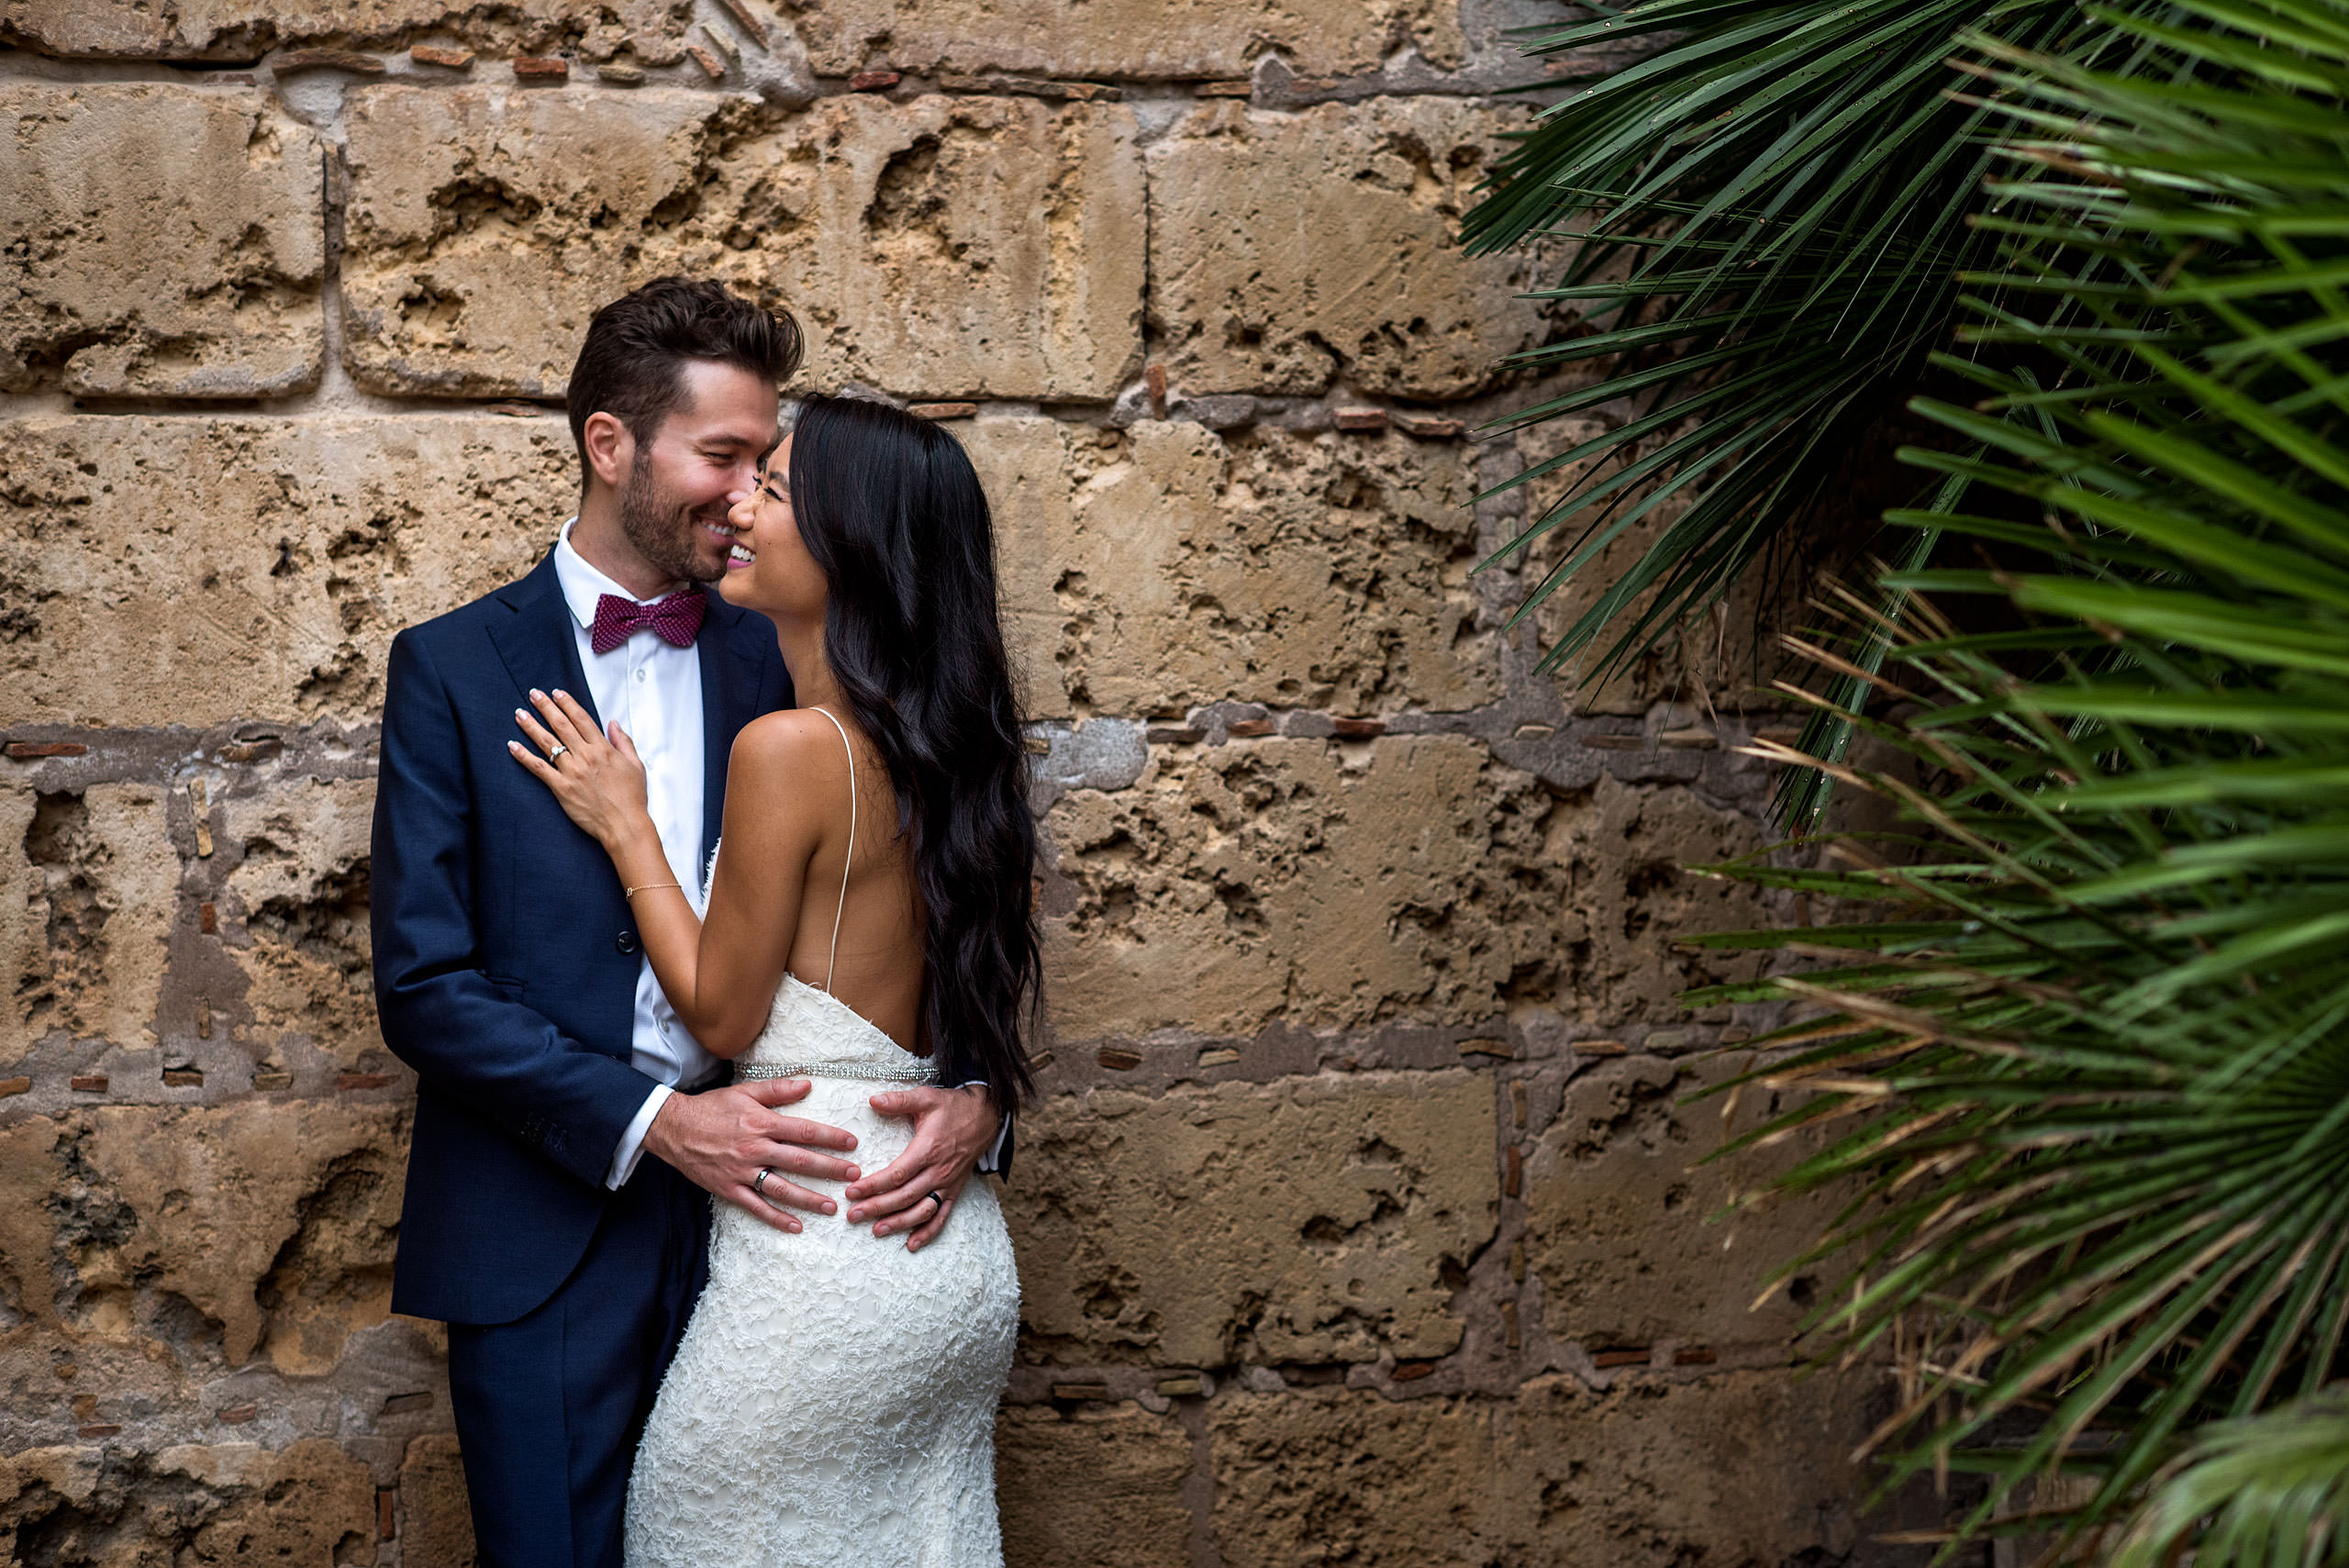 a bride and groom embracing in front of a brick wall at castillo hotel son vida destination wedding by sean leblanc